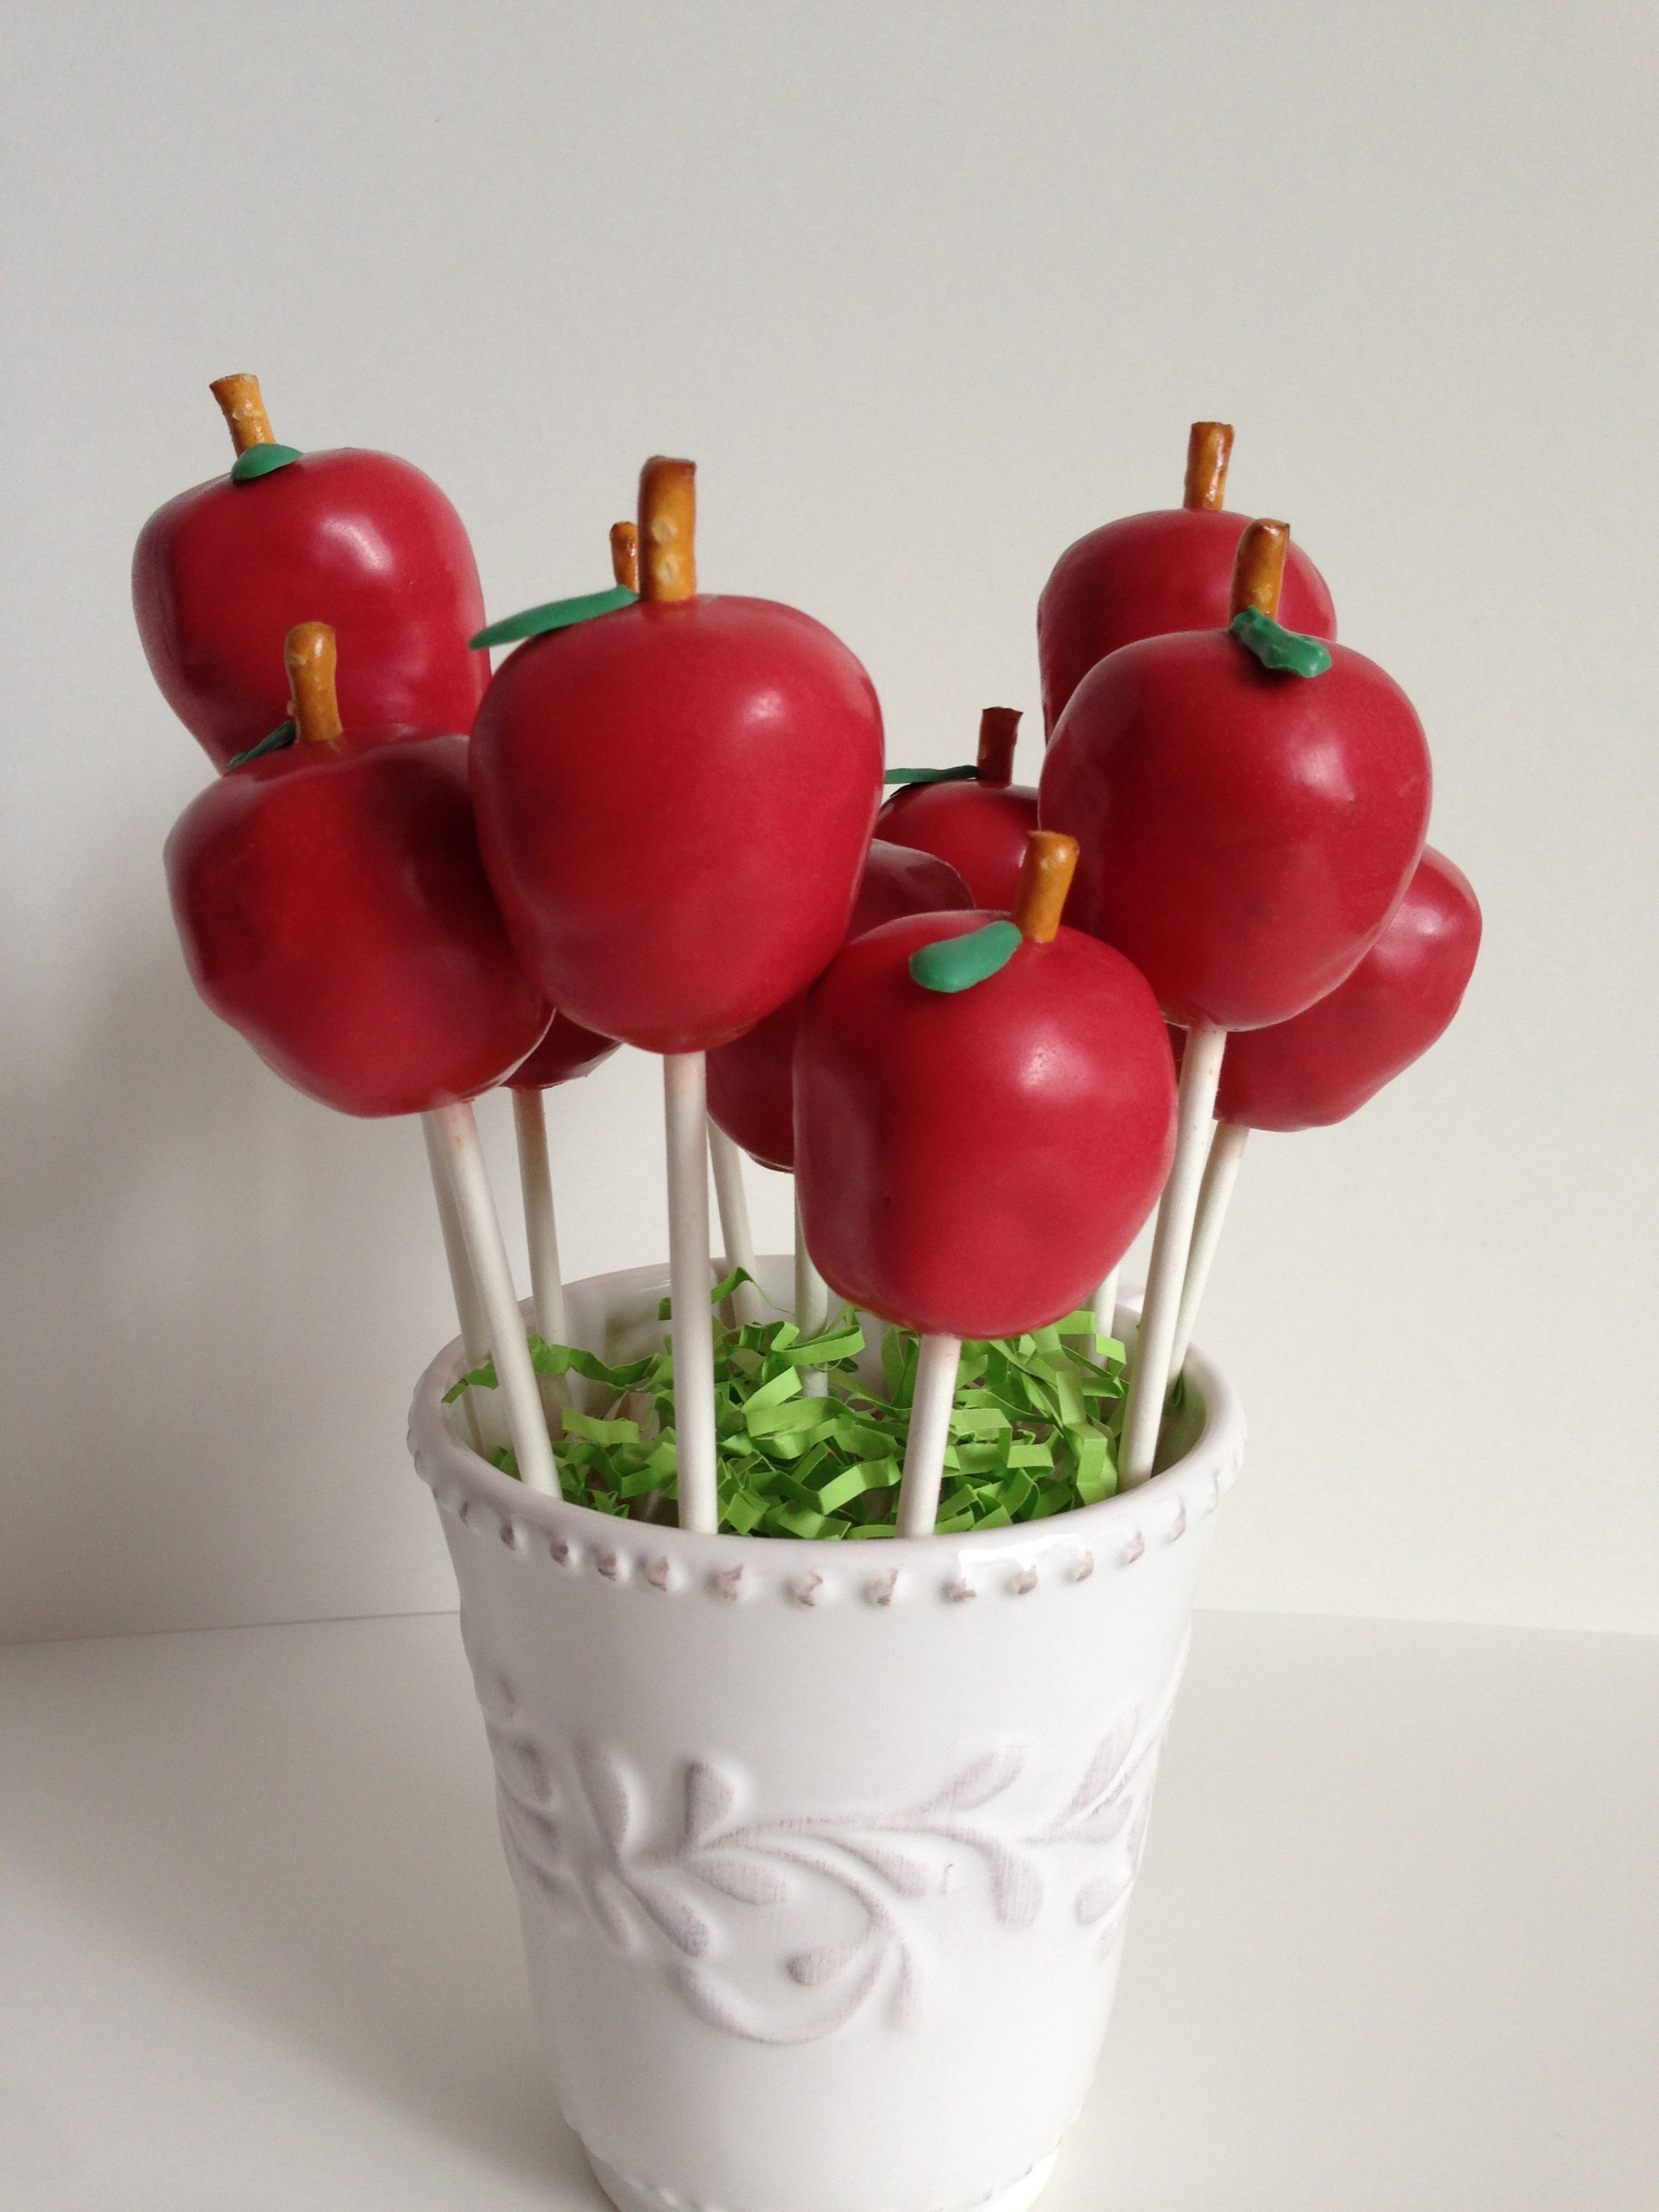 Apple cake pop bouquets for end of year teacher appreciation gifts #cakepopbouquet